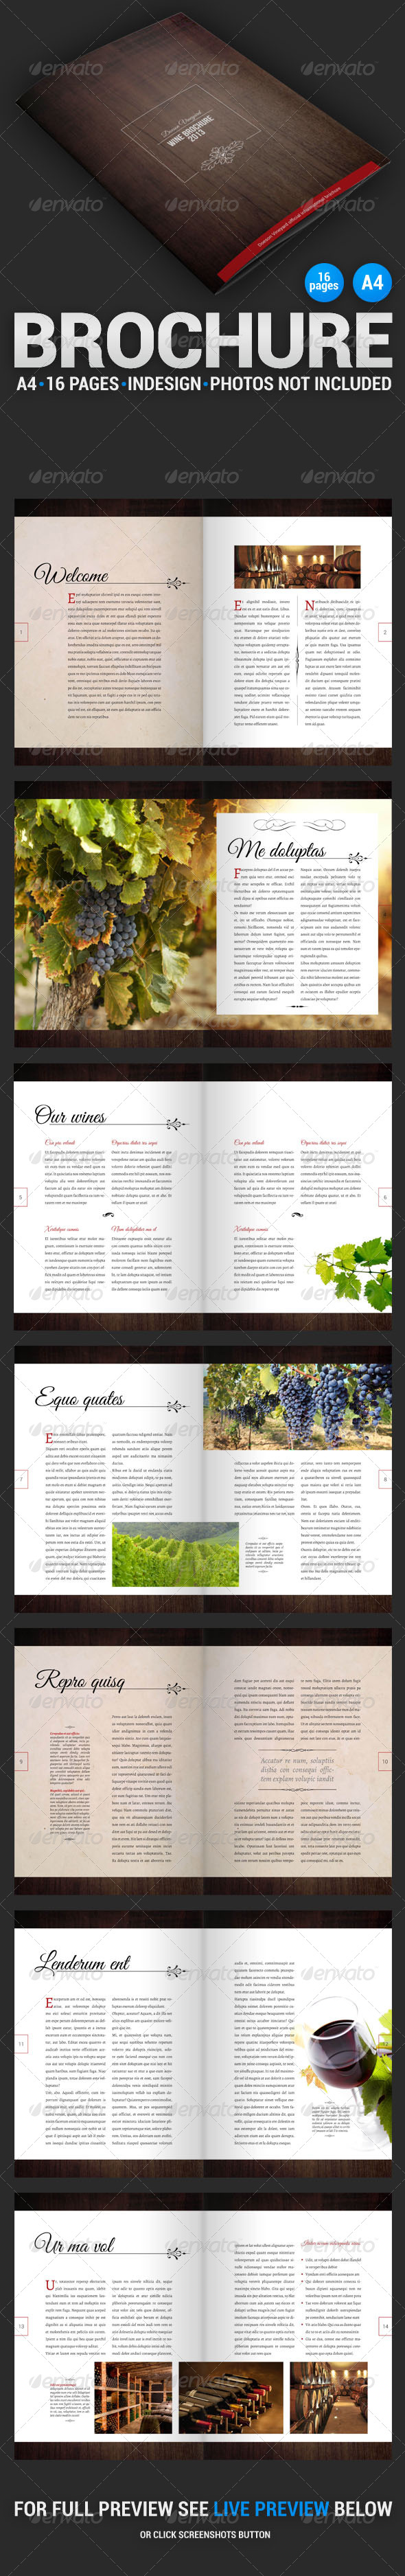 Wine Brochure 16 Pages